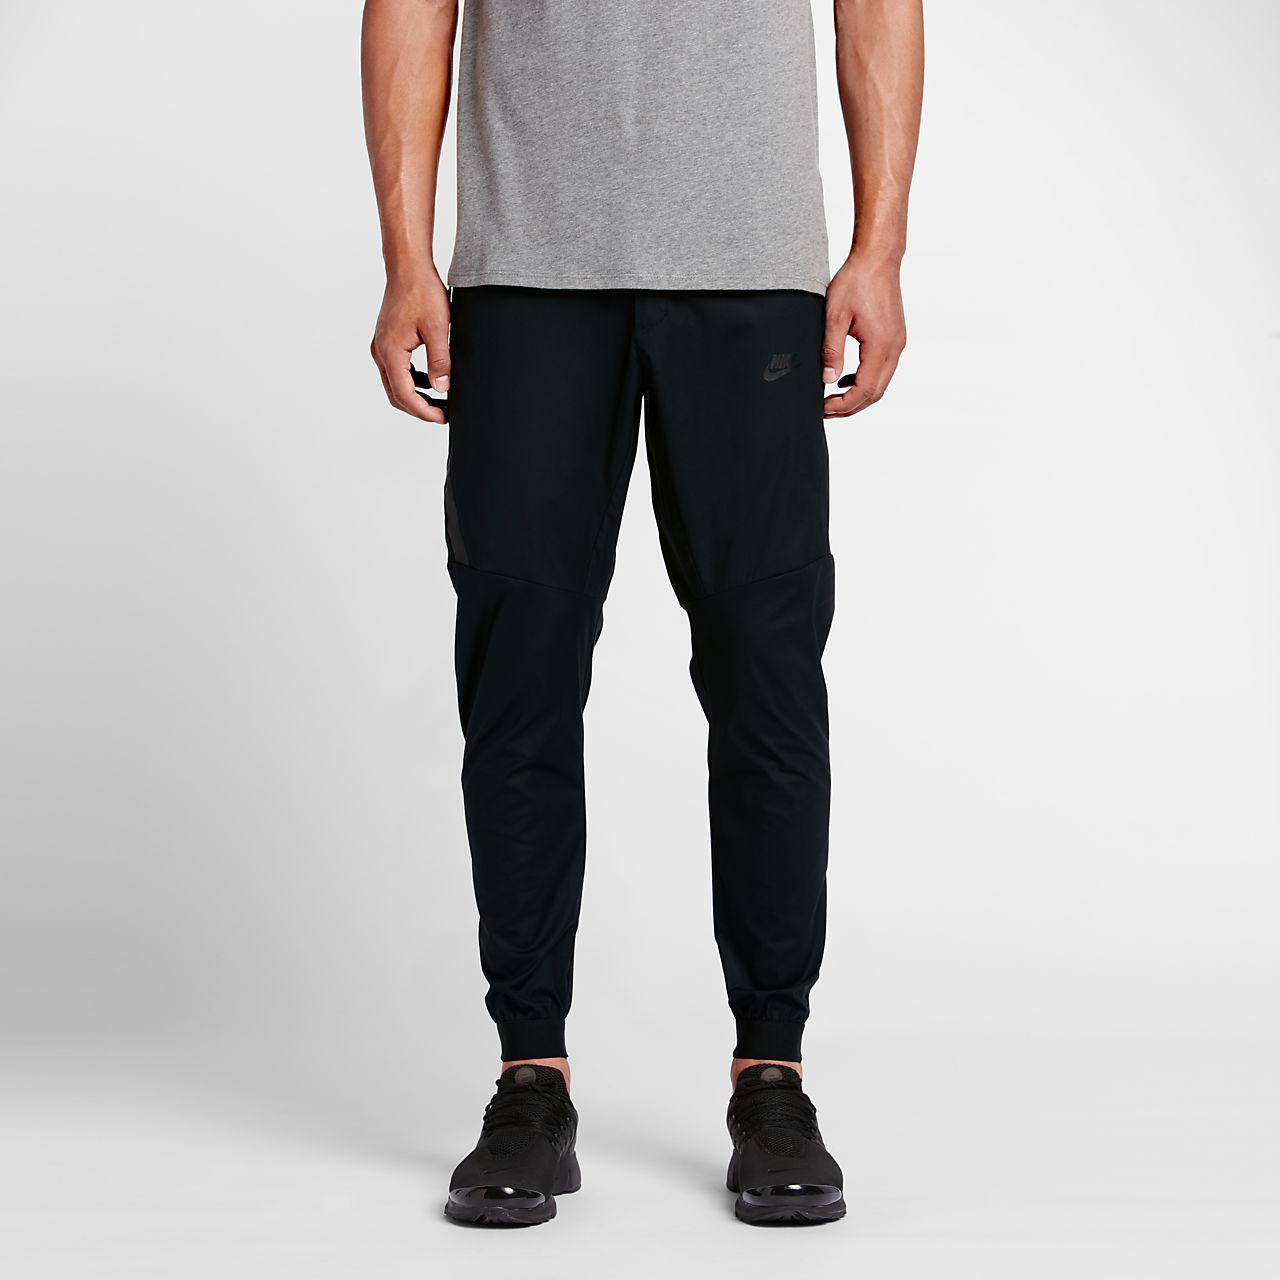 Low Resolution Nike Sportswear Bonded Men's Jogger Nike Sportswear Bonded  Men's Jogger